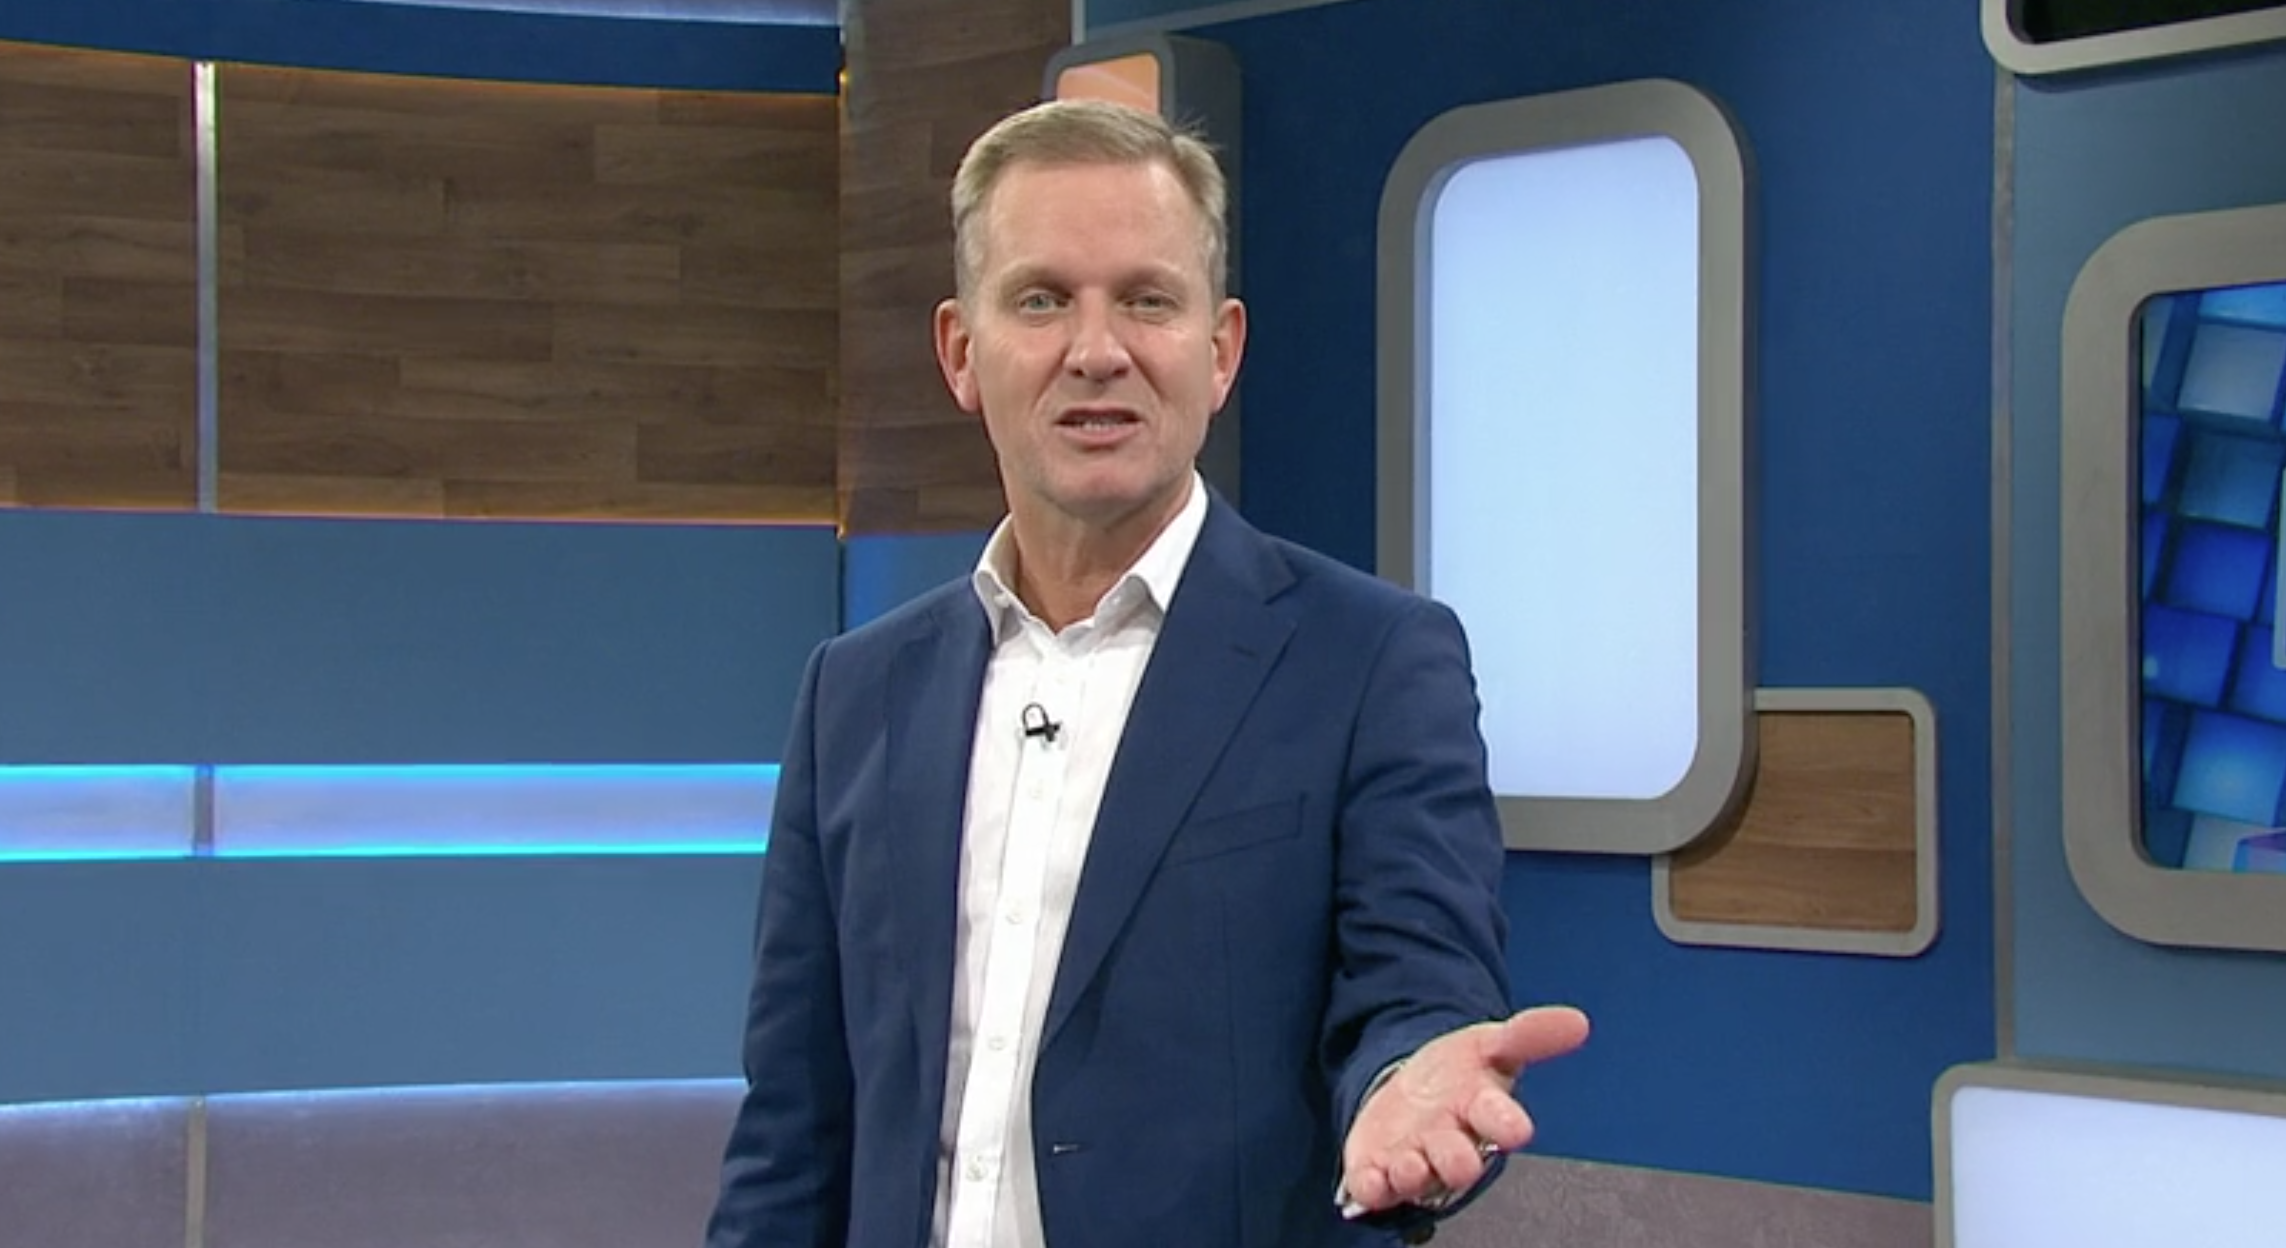 United Kingdom politicians call for cancelling of Jeremy Kyle Show